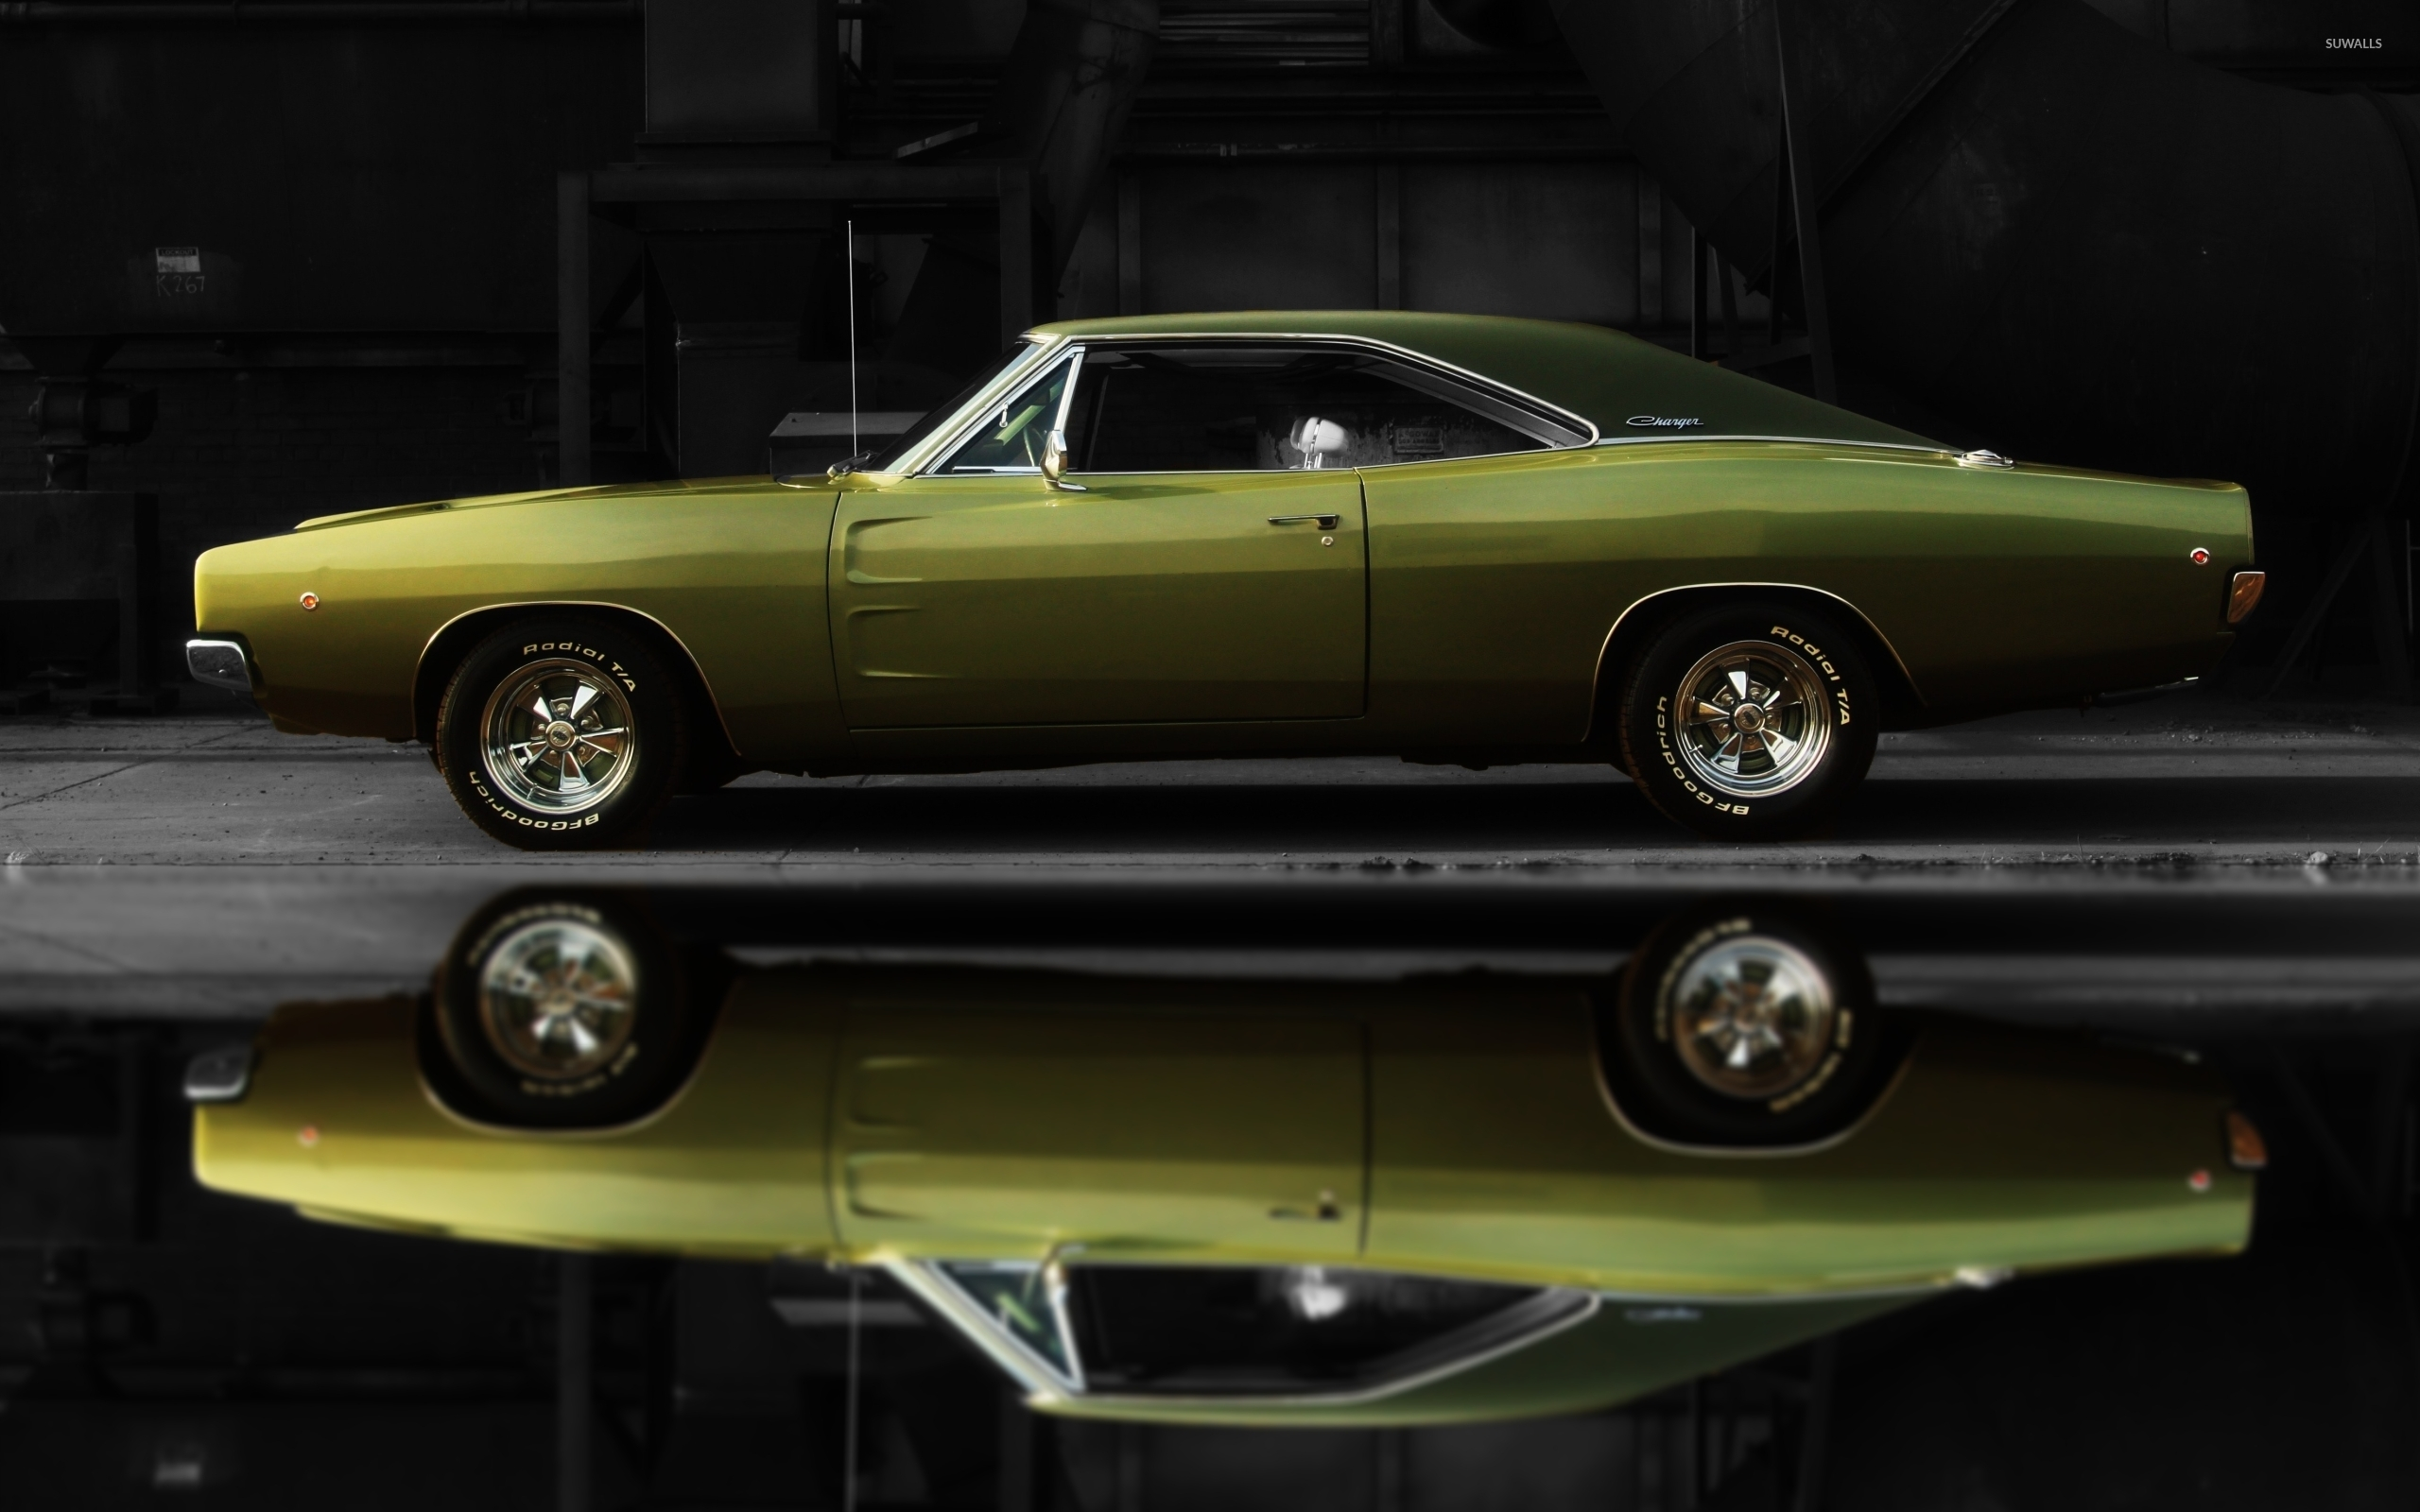 Dodge Charger wallpaper - Car